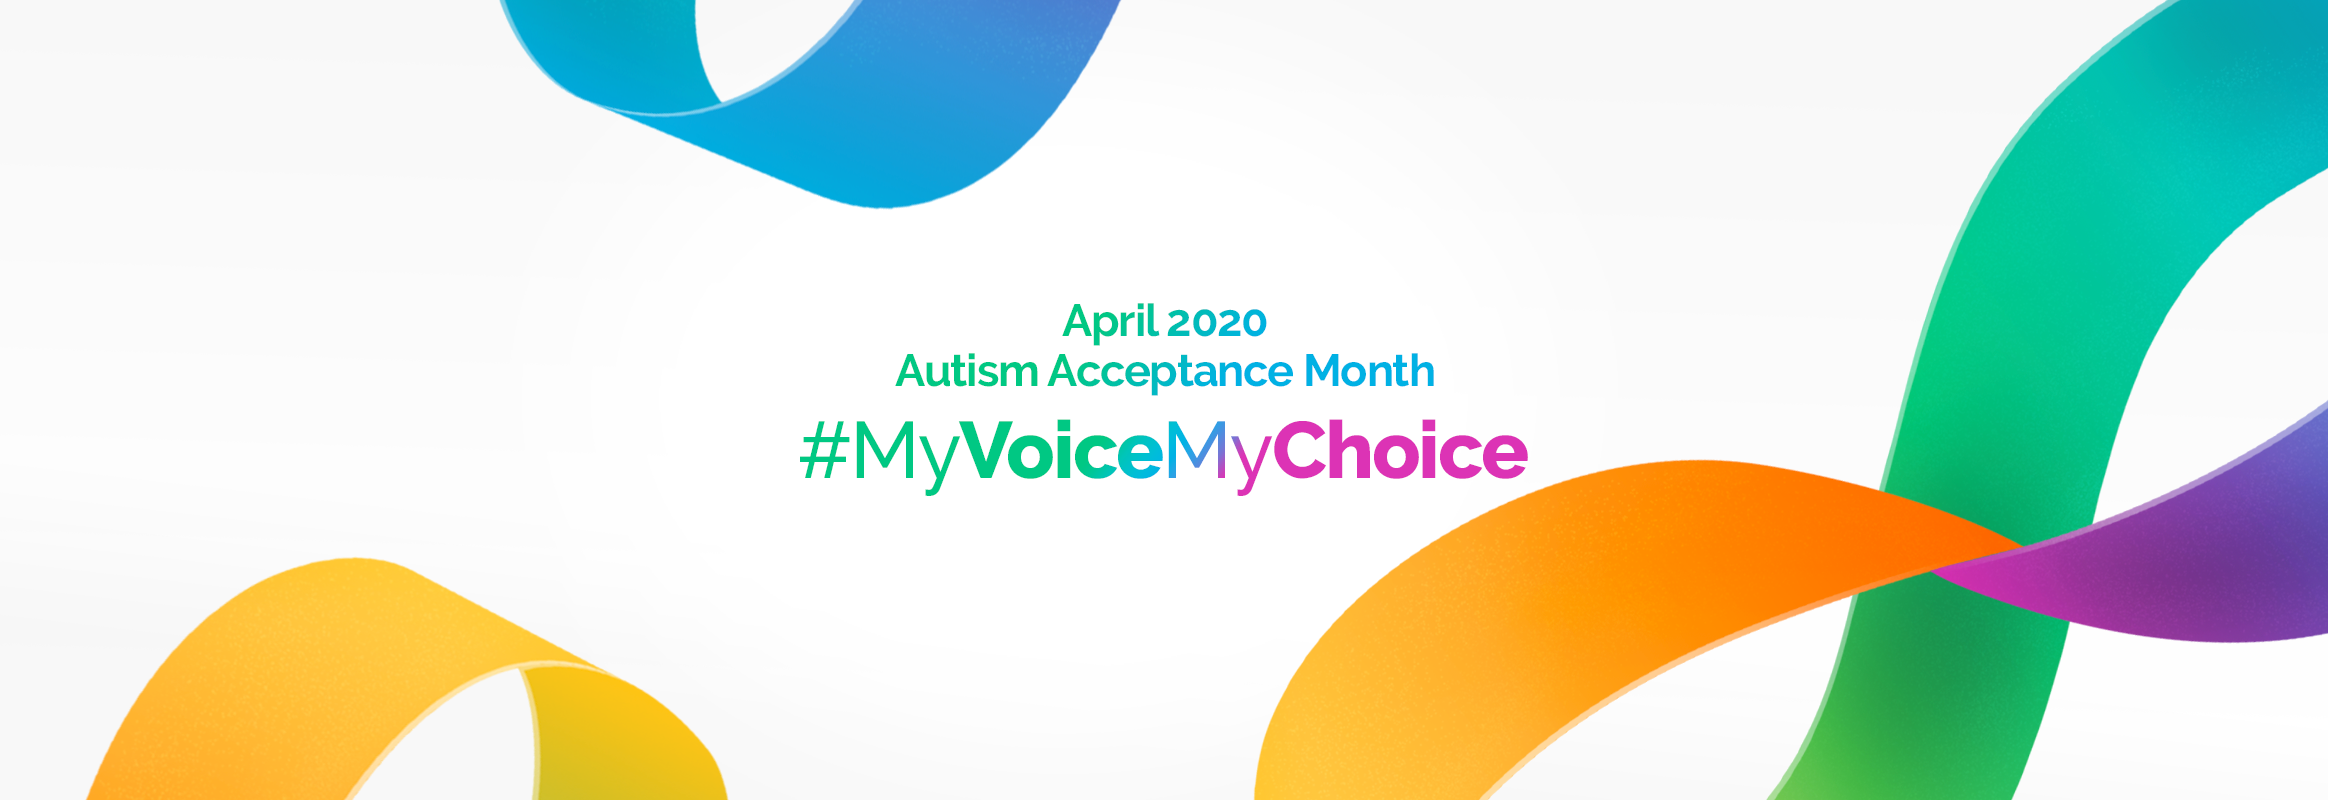 Autism Acceptance Month Rainbow Ribbon My Voice My Choice